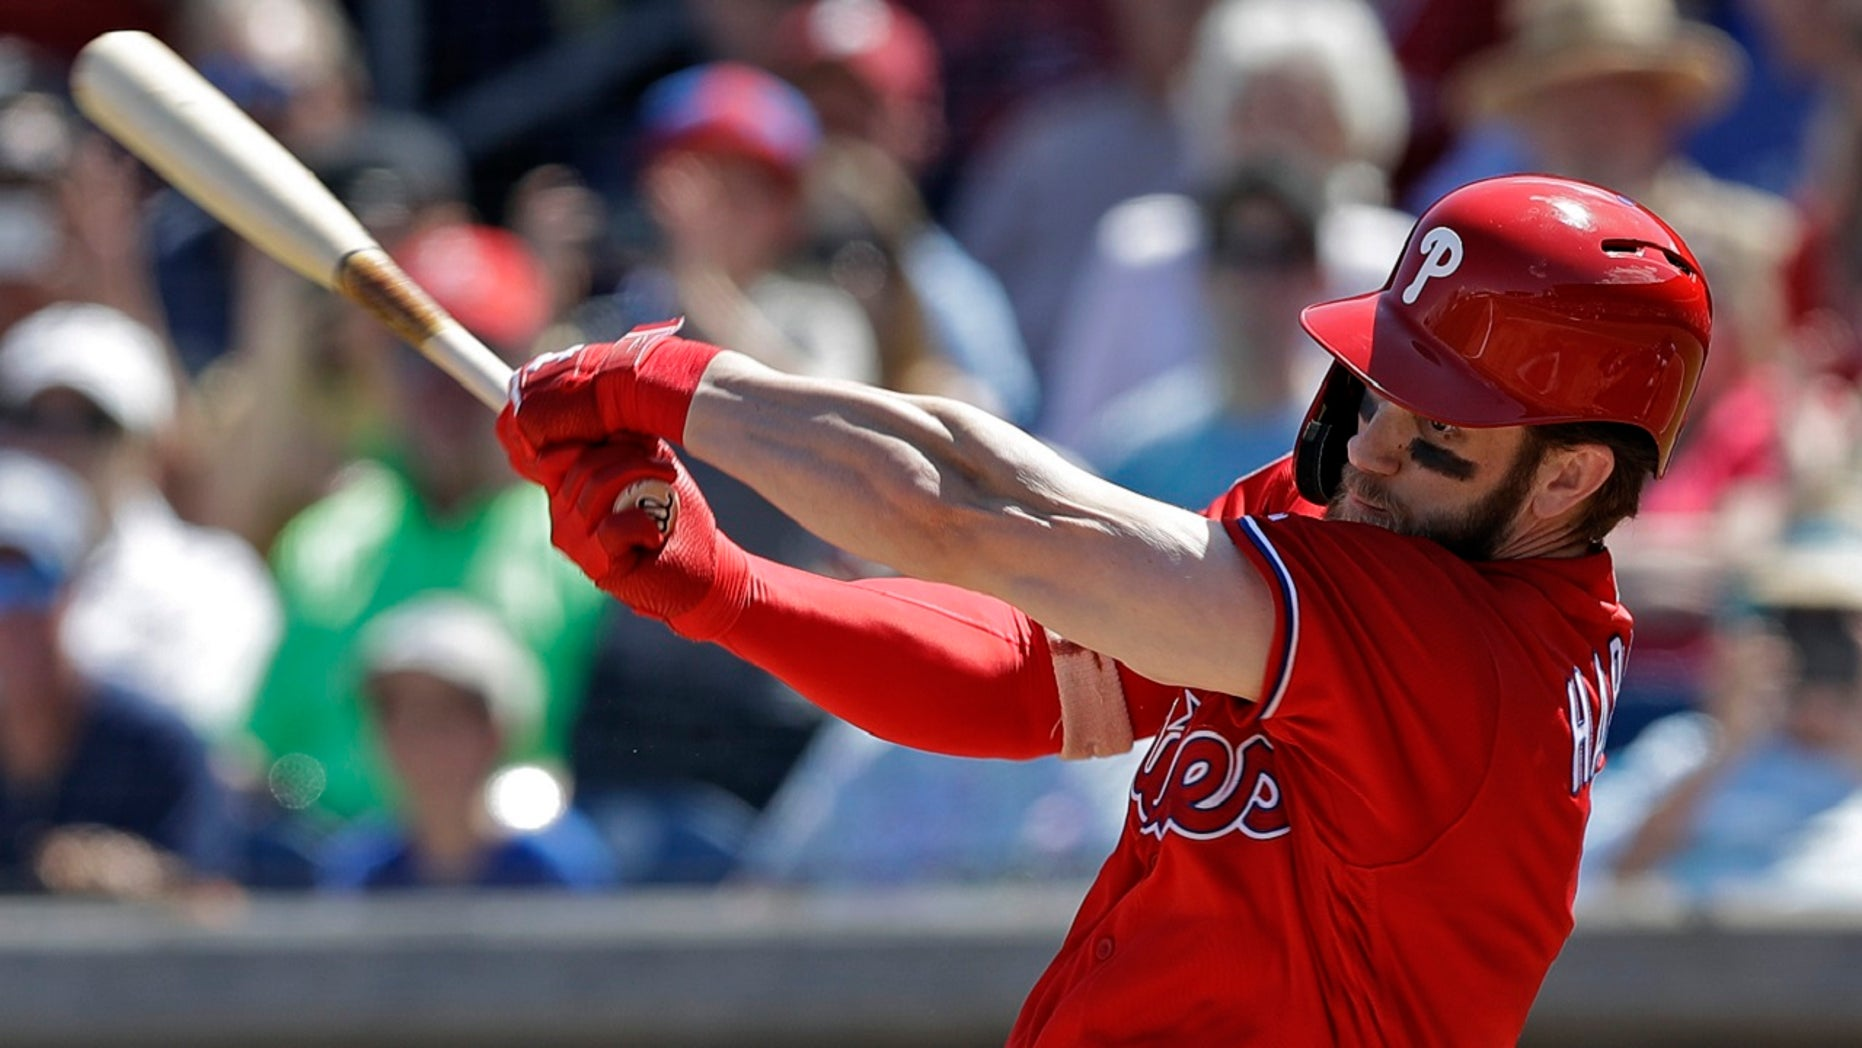 Philadelphia Phillies' Bryce Harper swings at a pitch from Toronto Blue Jays' Matt Shoemaker during the first inning of a spring training baseball game Saturday, March 9, 2019, in Clearwater, Fla. (Associated Press)